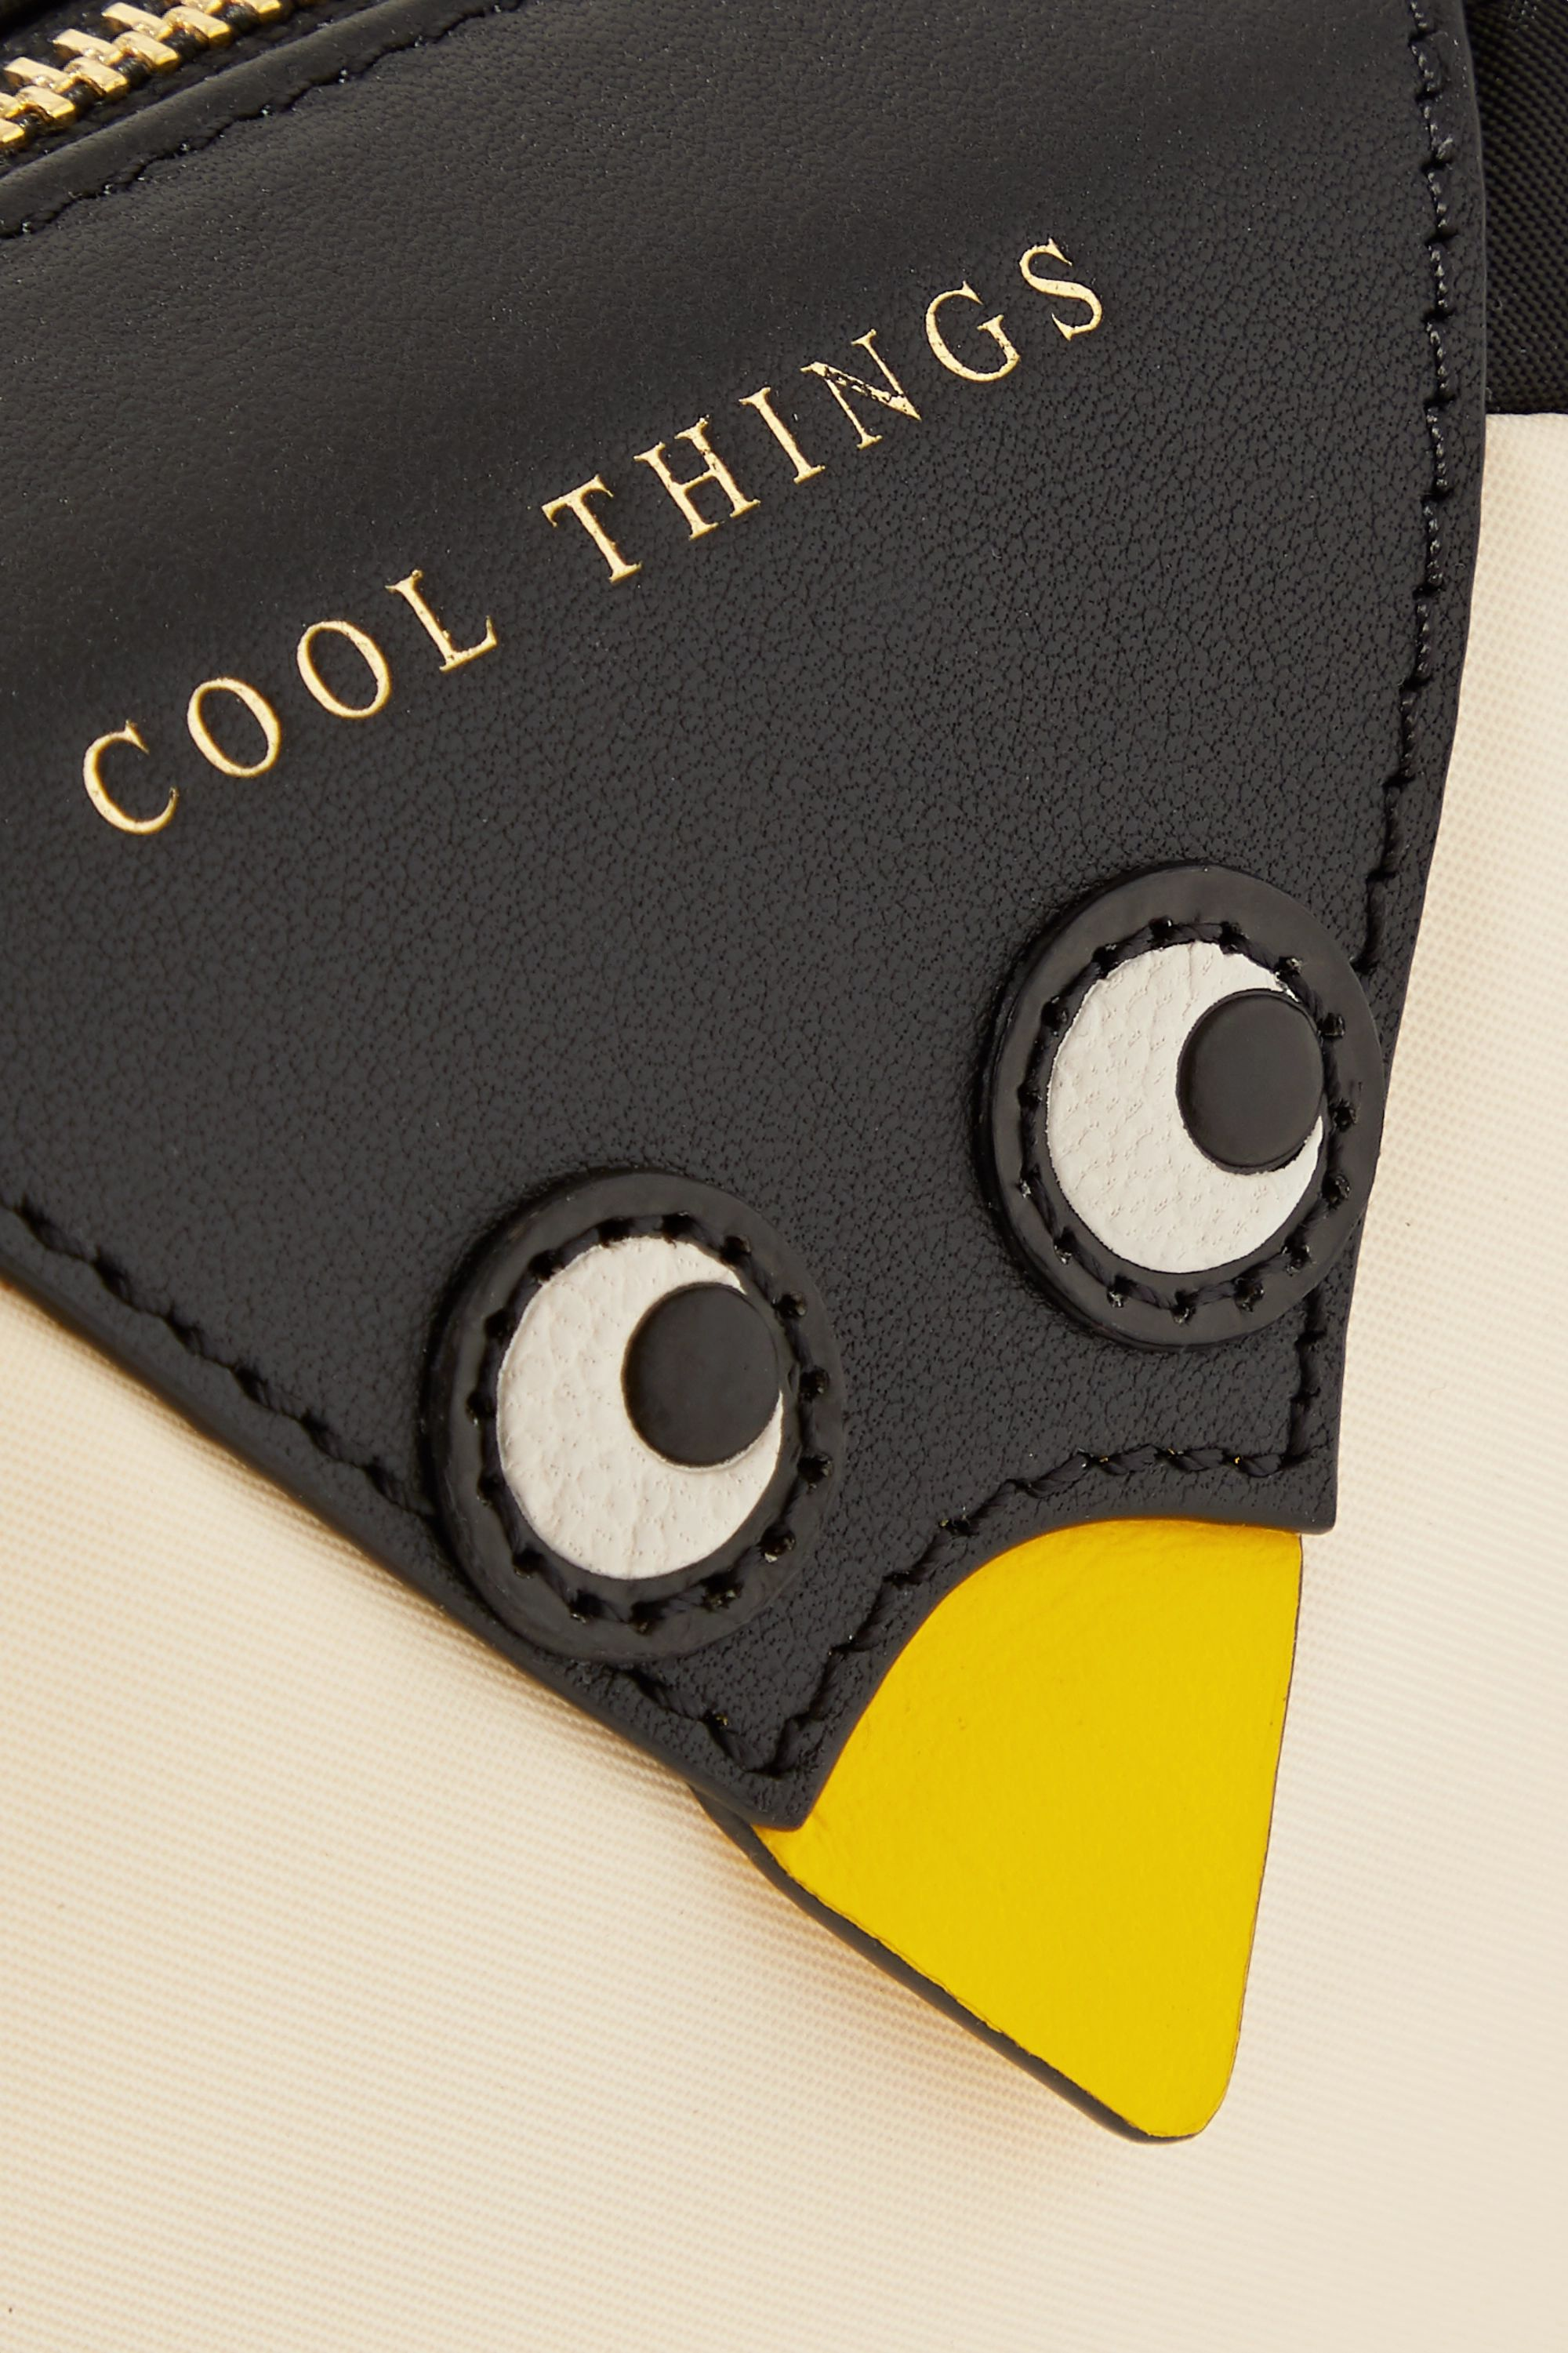 Anya Hindmarch Cool Things Penguin leather-trimmed shell cosmetics case